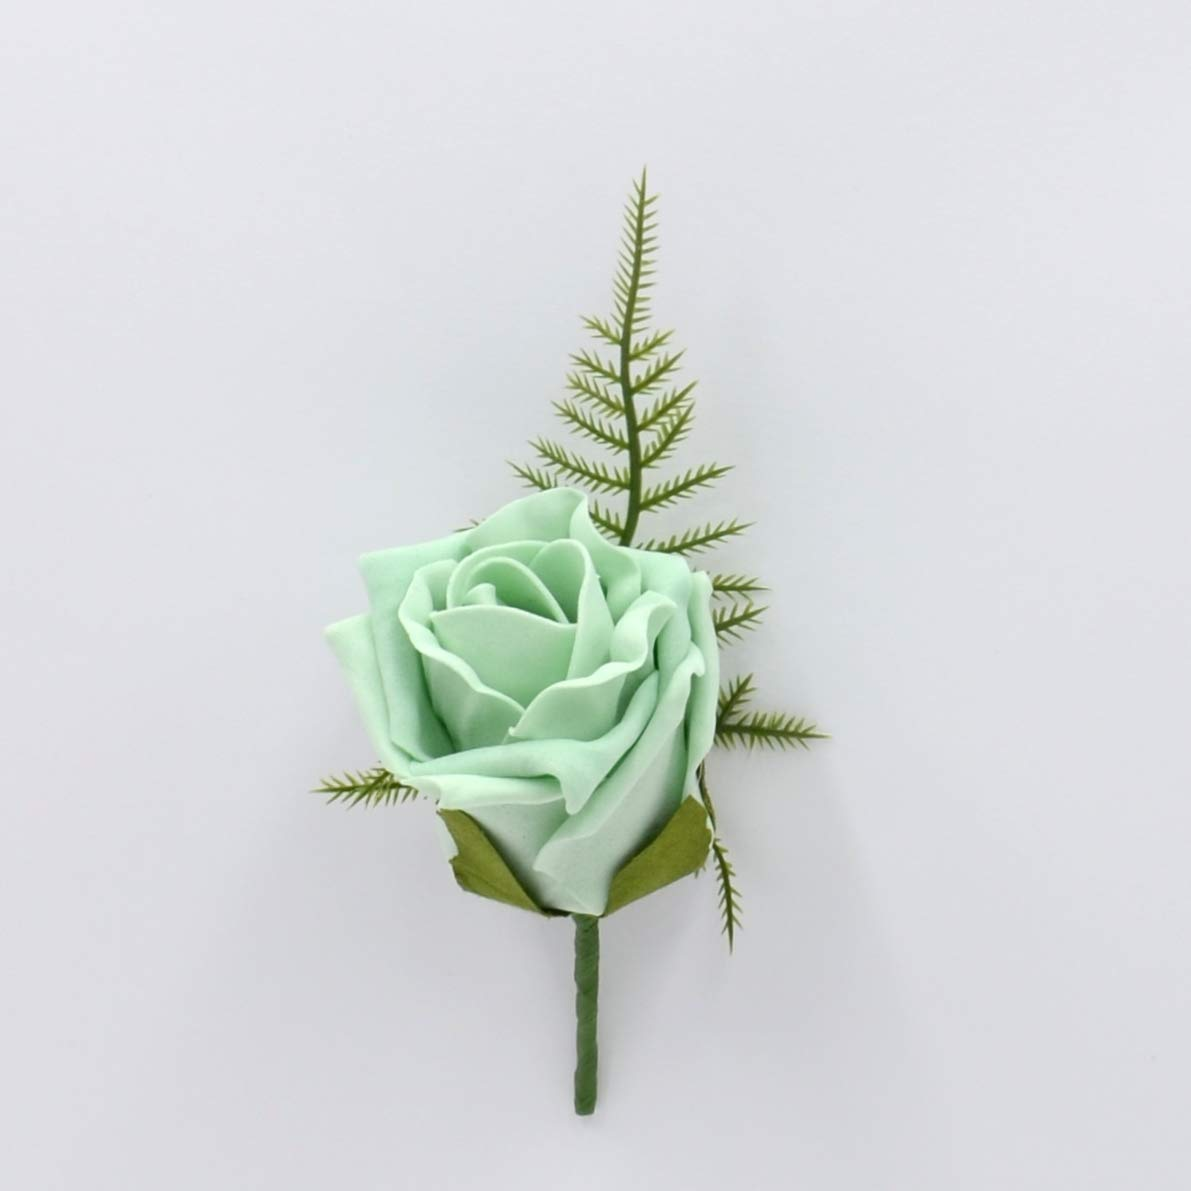 Artificial Wedding Flowers Hand-Made by Petals Polly, Foam Rose Buttonhole in Mint Green PETALS POLLY FLOWERS